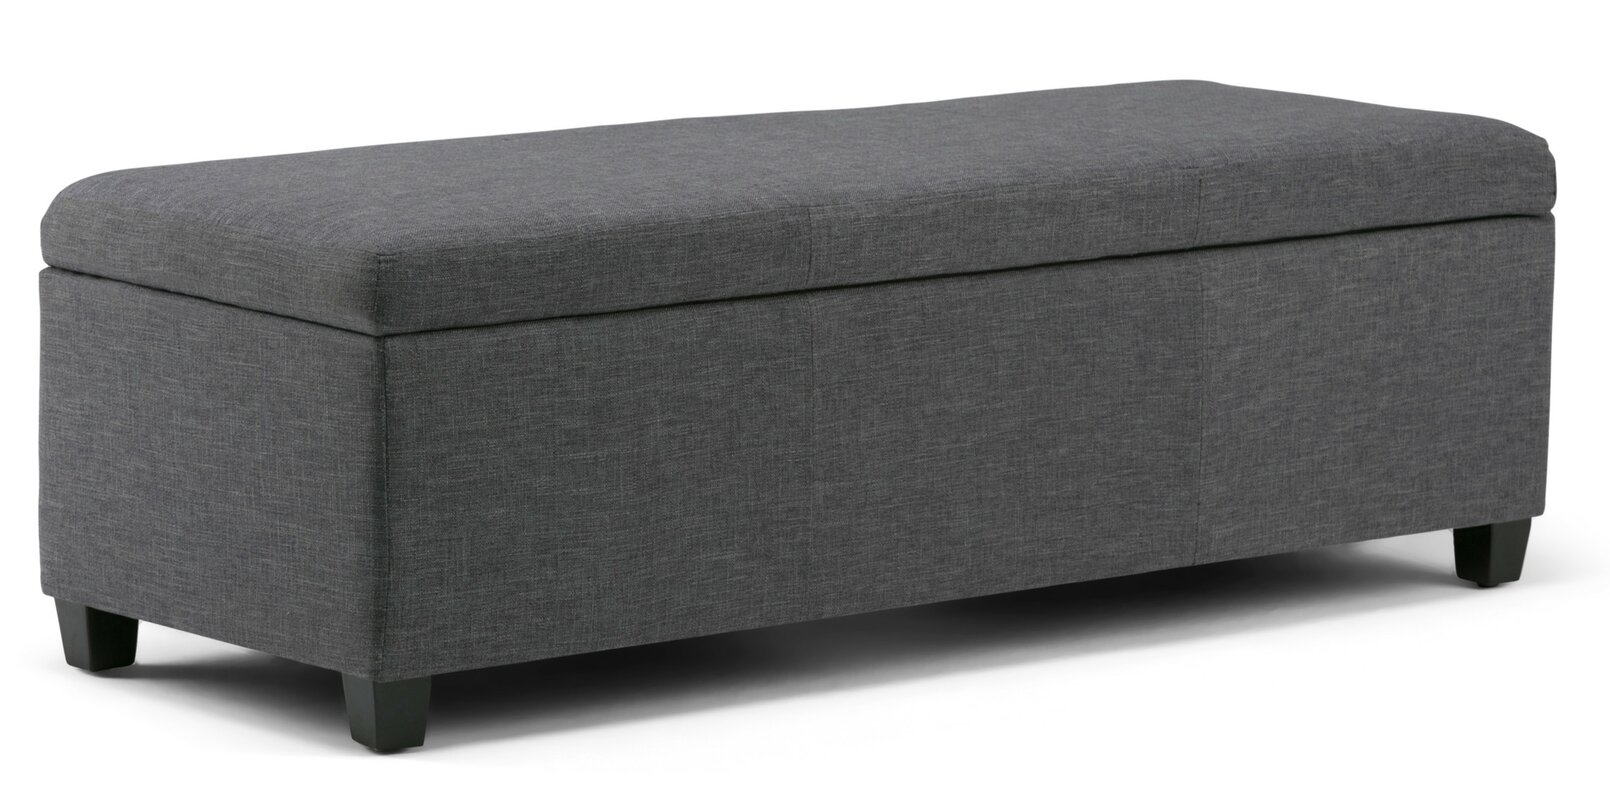 simpli home avalon upholstered storage bench  reviews  wayfair - defaultname